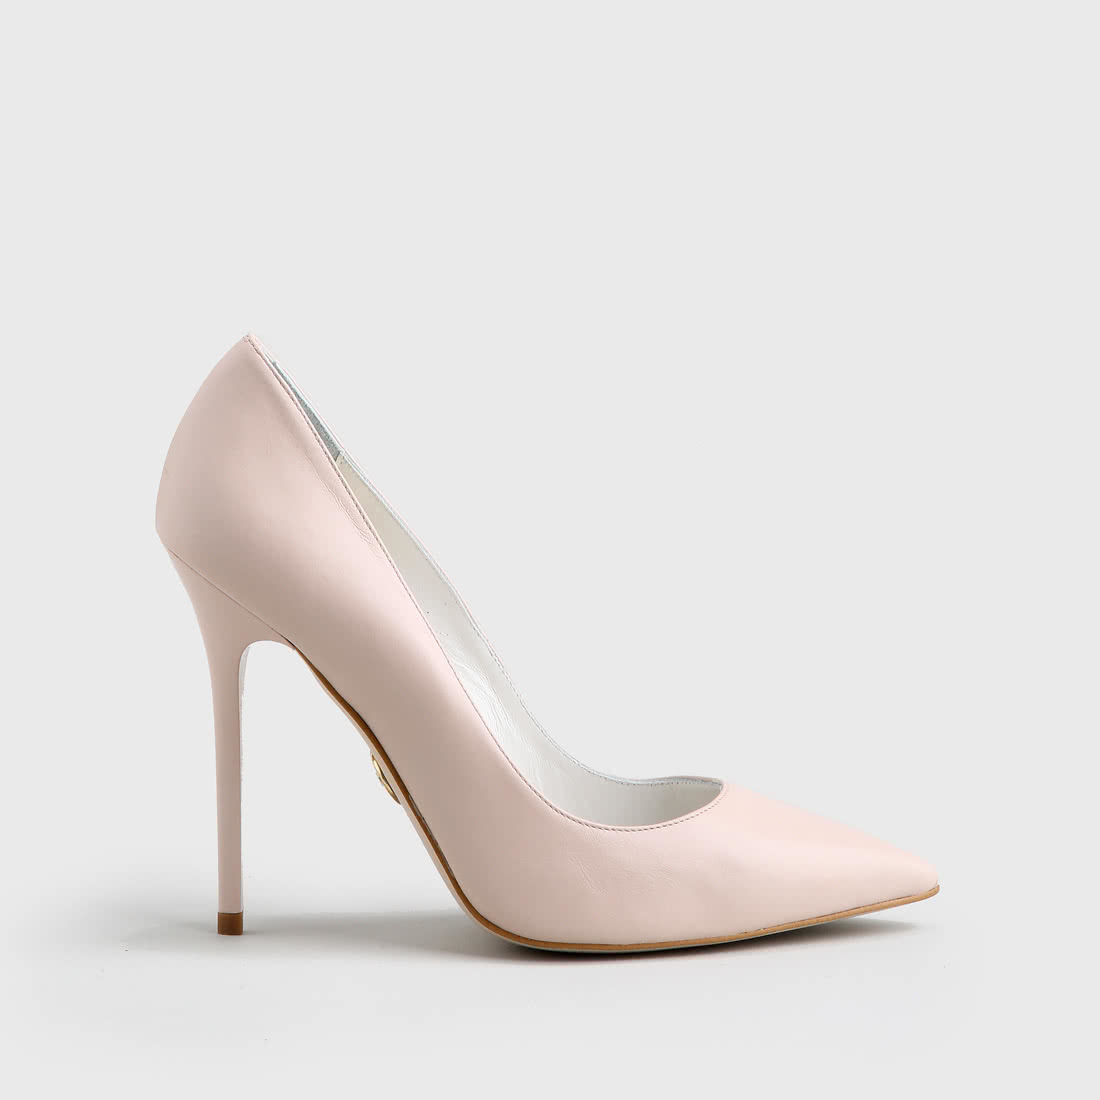 Buffalo pointed pumps leather 11 cm nude